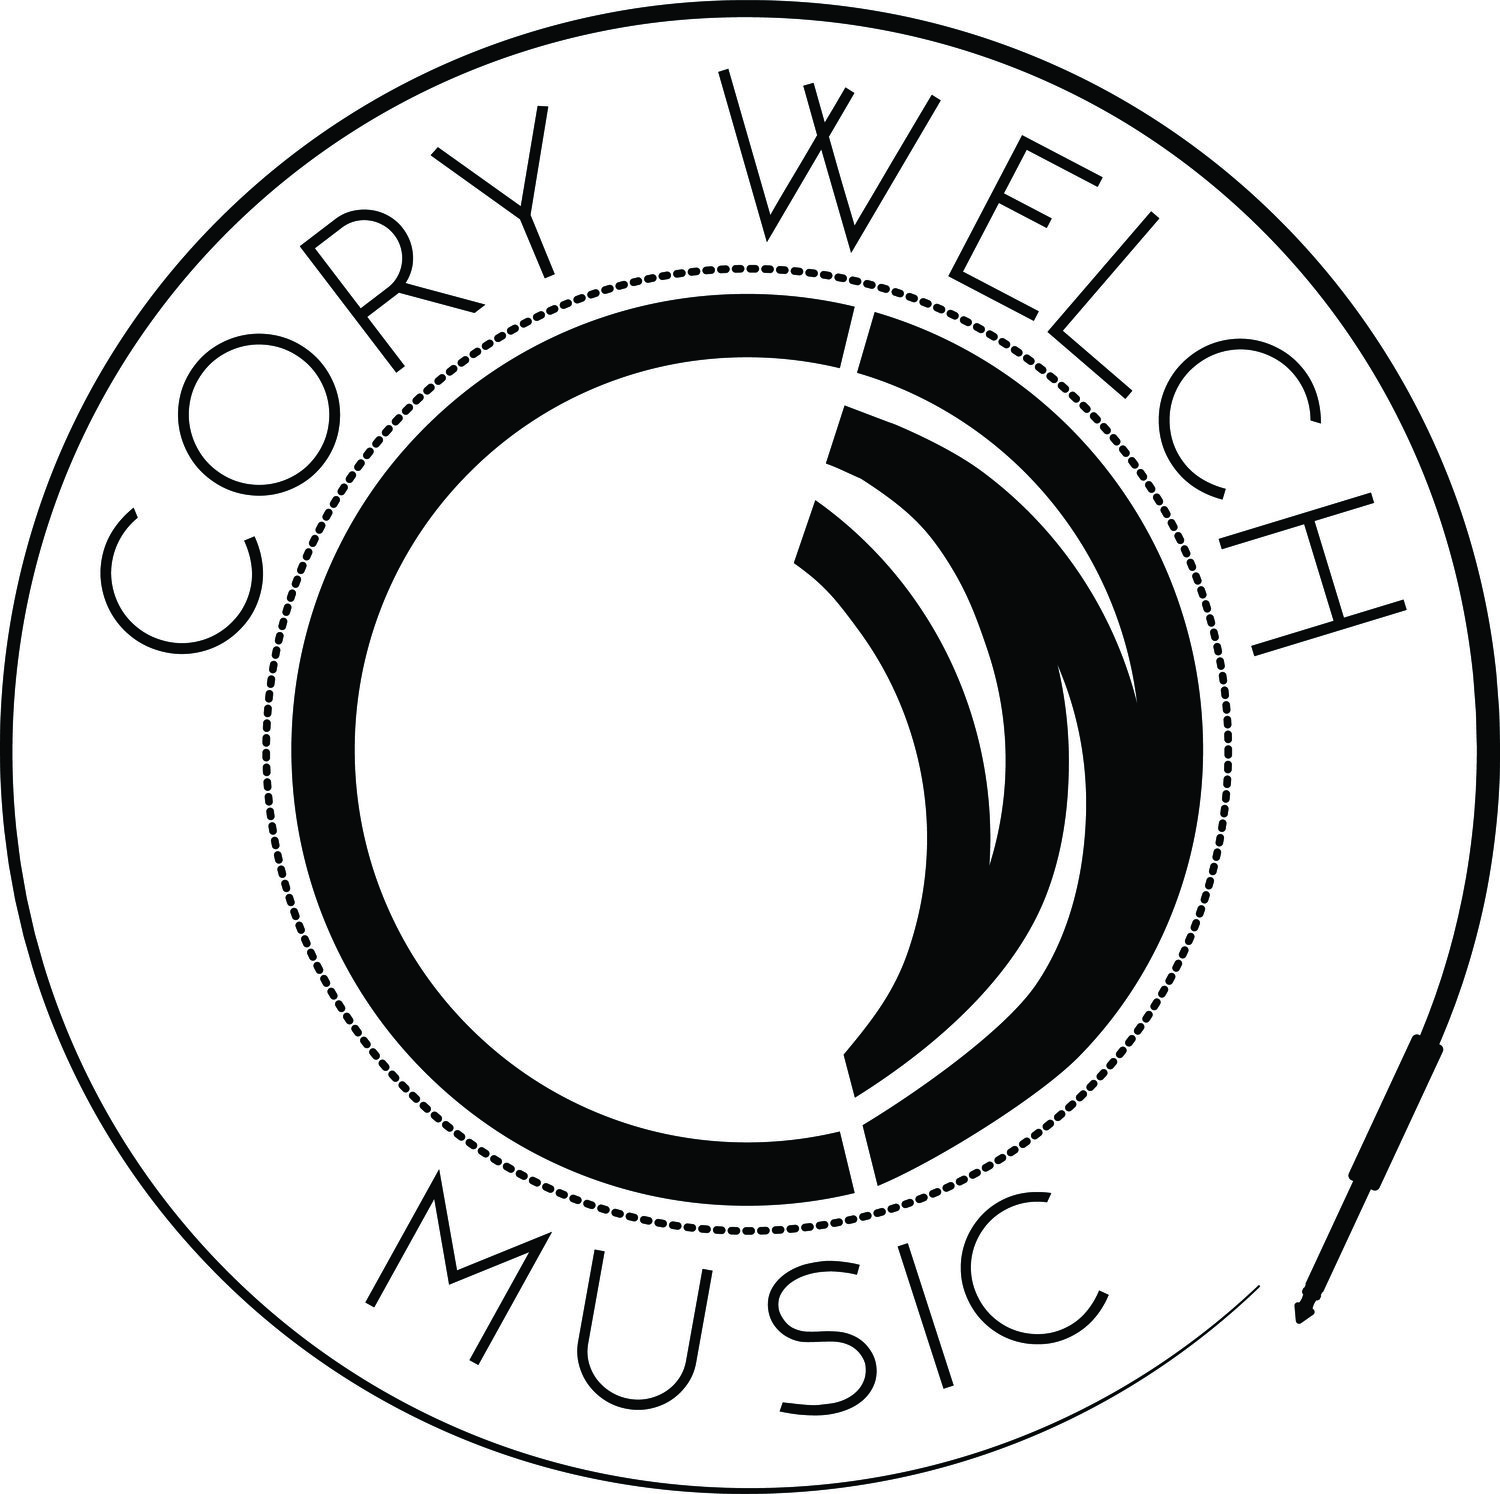 Cory Welch Music